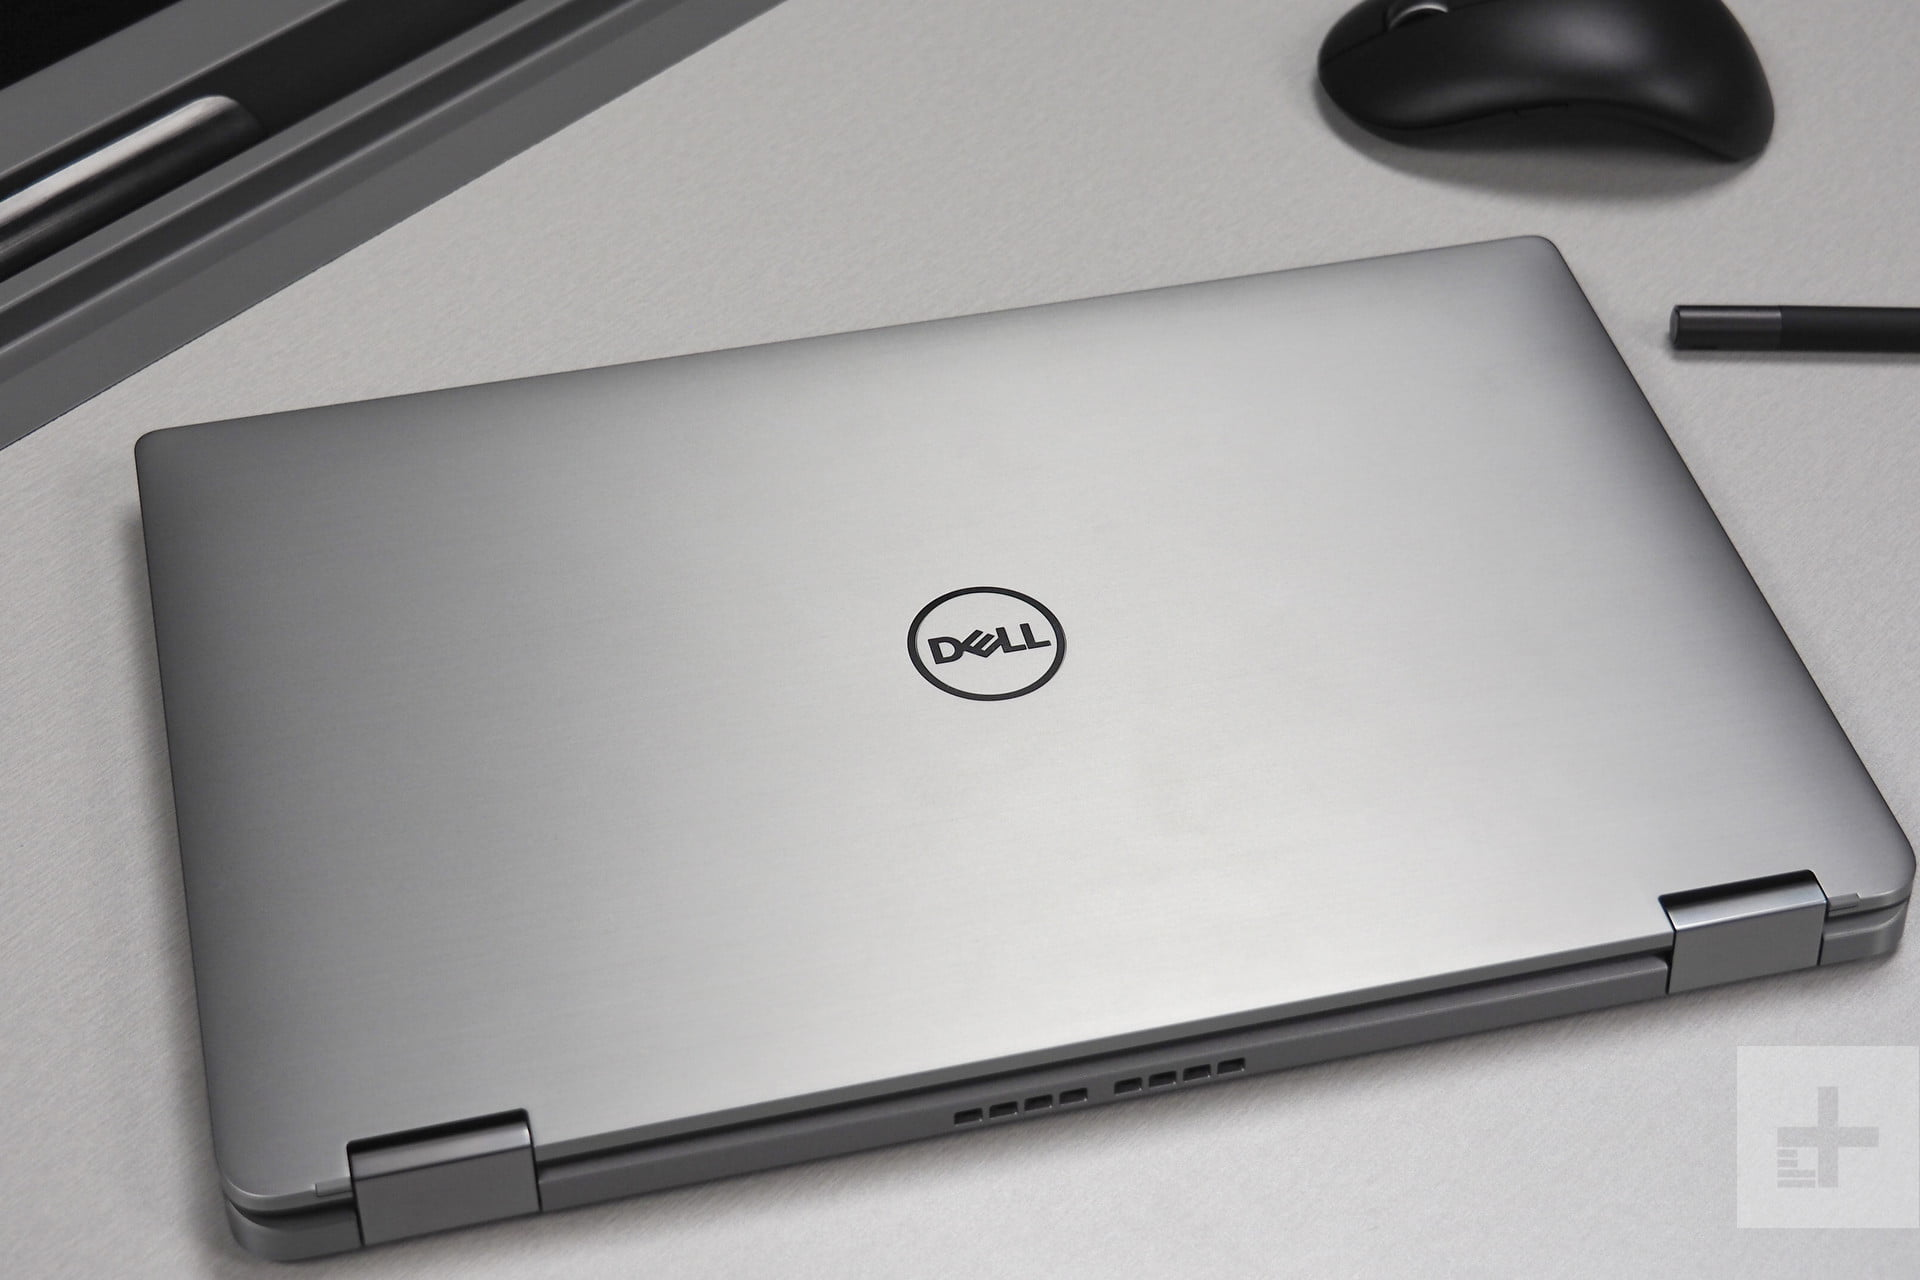 Another vulnerability found in Dell's security bloatware, users must update ASAP